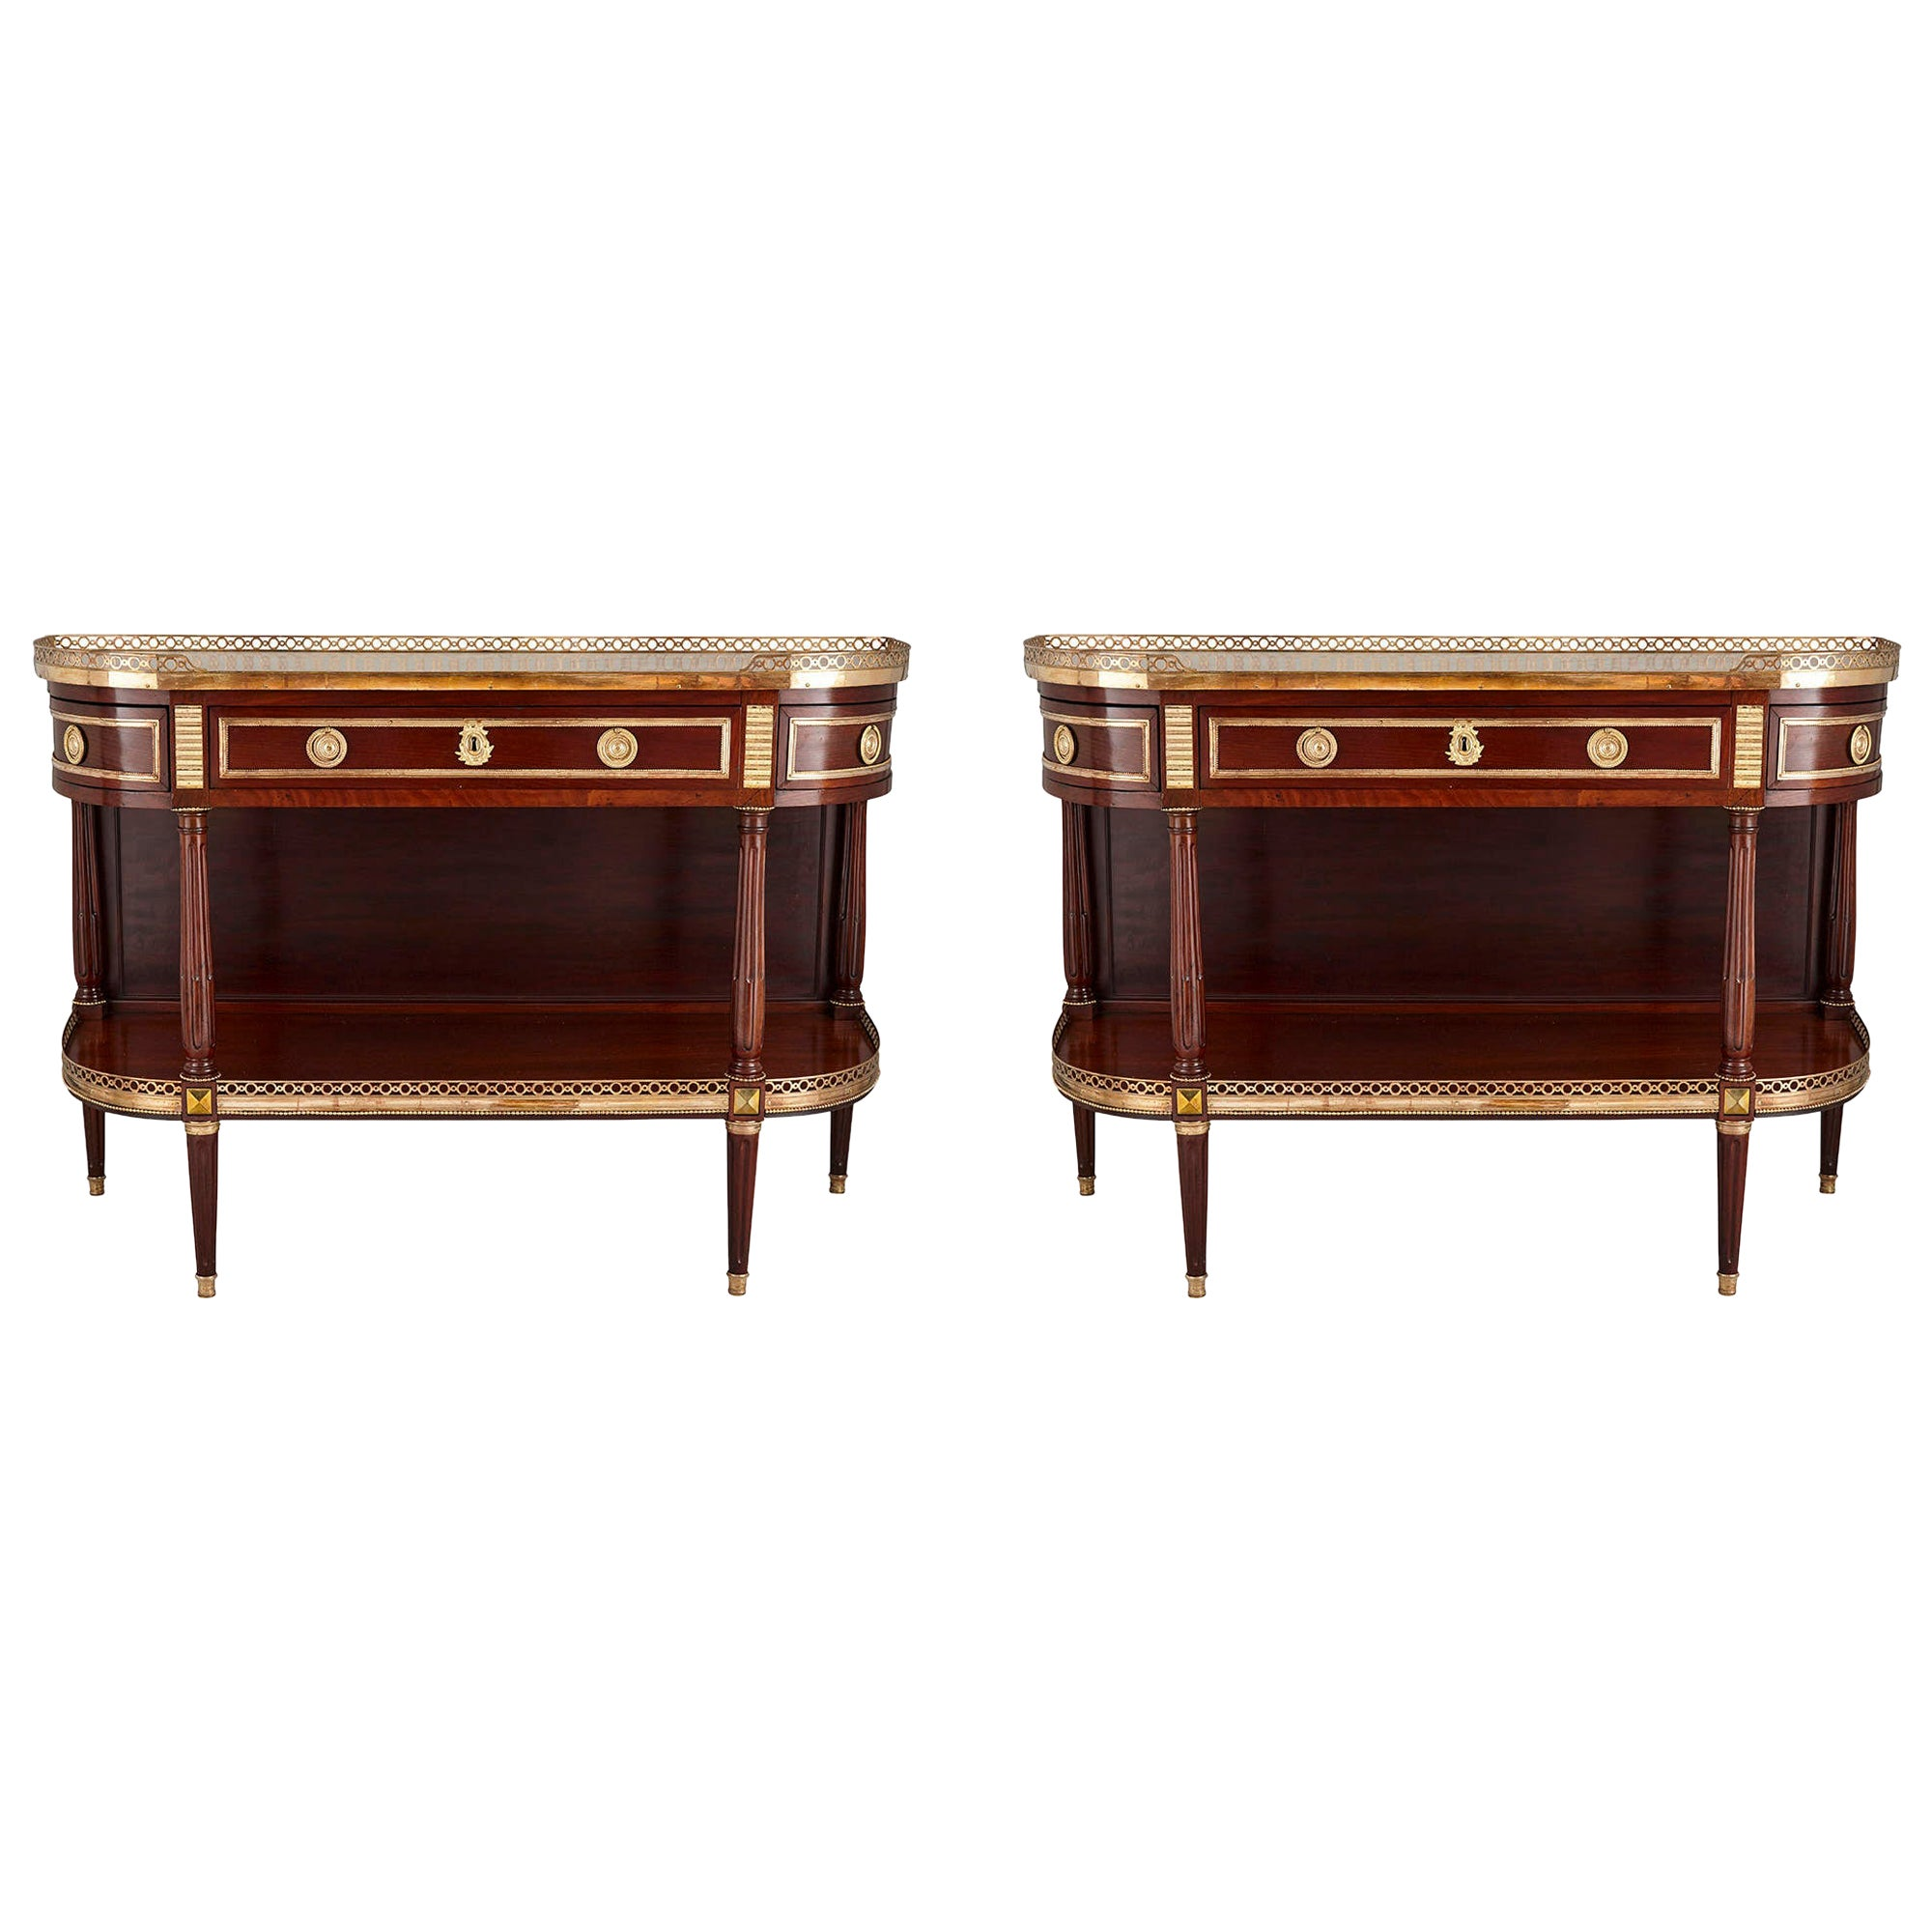 Pair of Neoclassical Style Gilt Bronze Mounted French Consoles